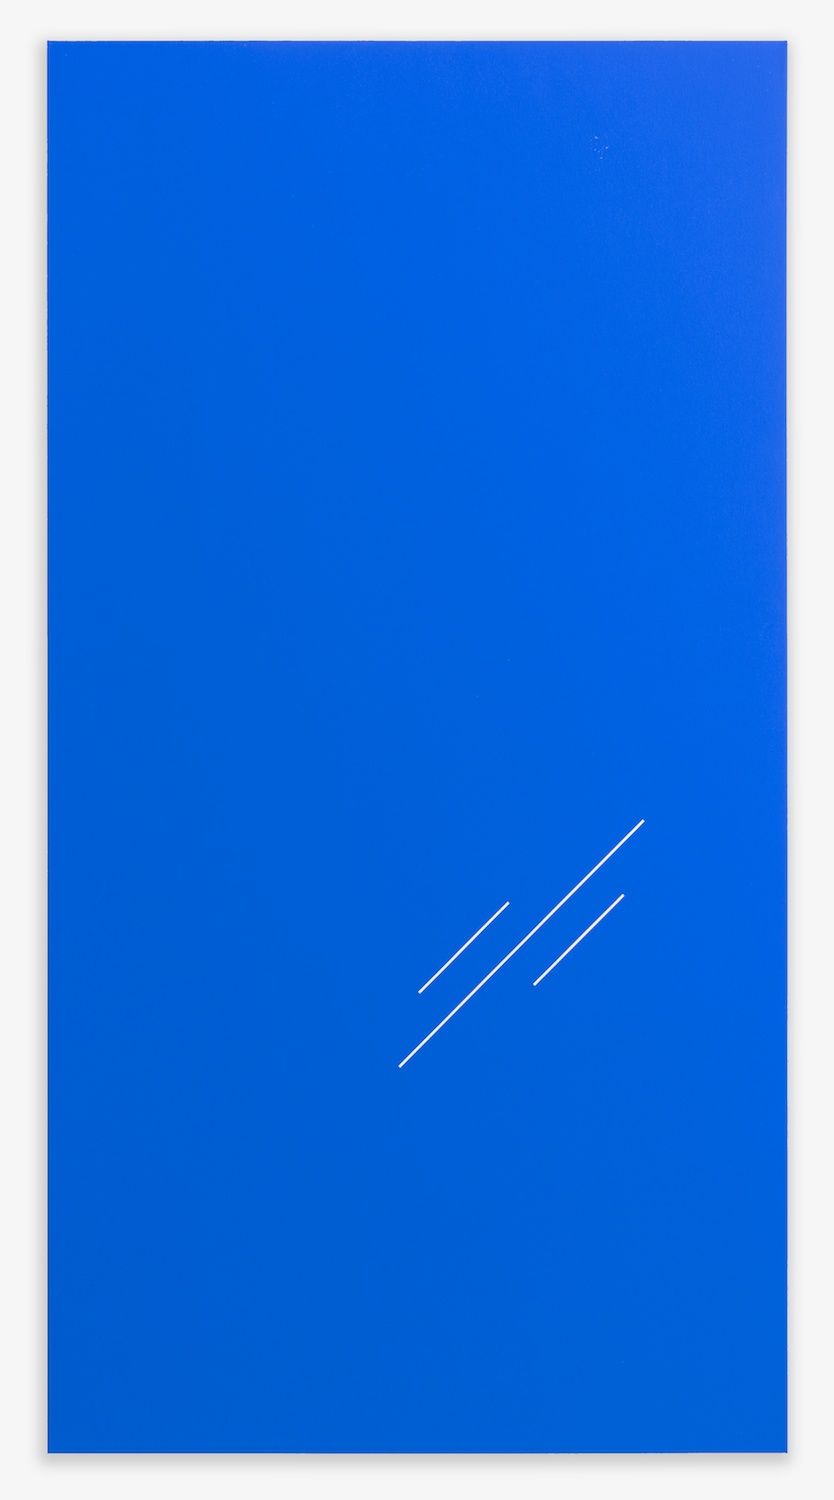 Paul Cowan  BCEAUSE THE SKY IS BULE  2013 Chroma-key Blue Paint On Canvas 78h x 41w in PC077